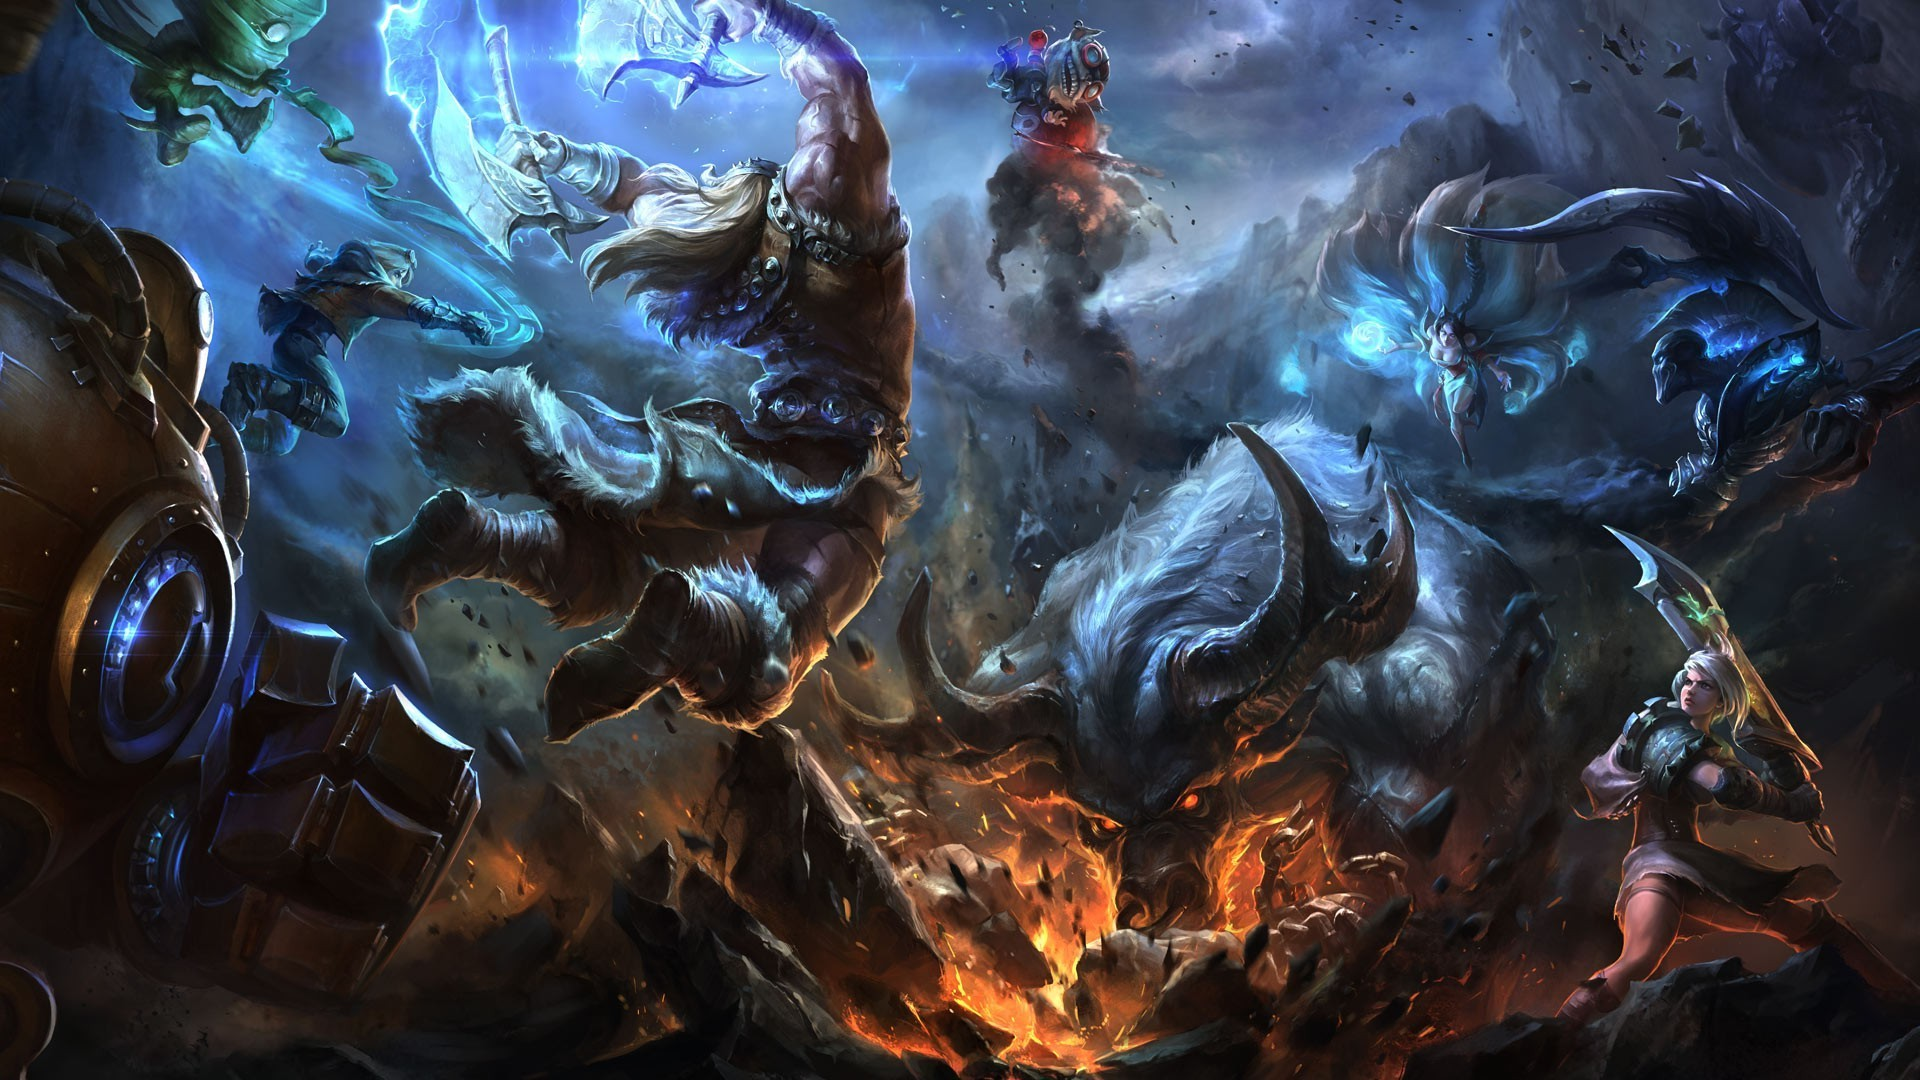 League of Legends Moving Wallpaper - WallpaperSafari